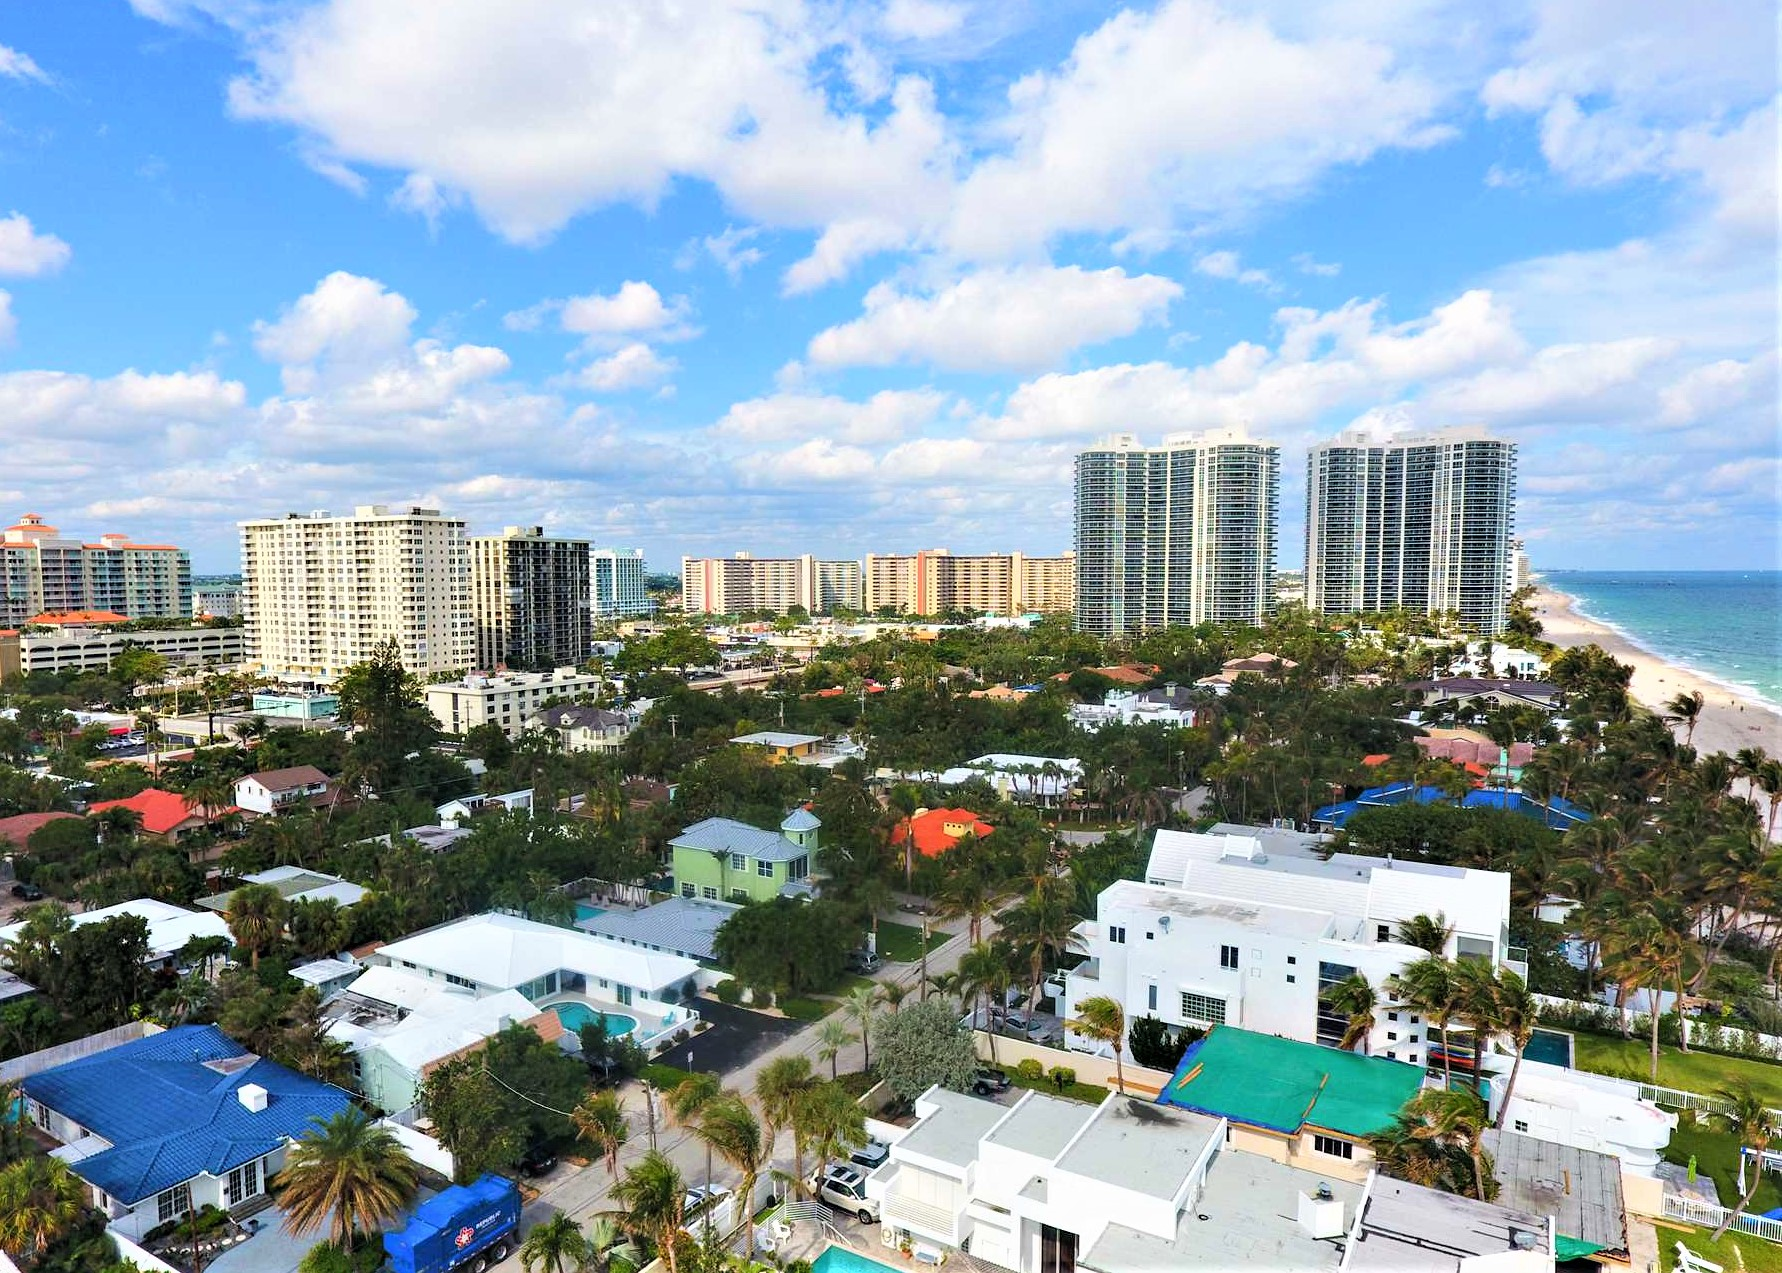 The home is located close to all the action of Fort Lauderda